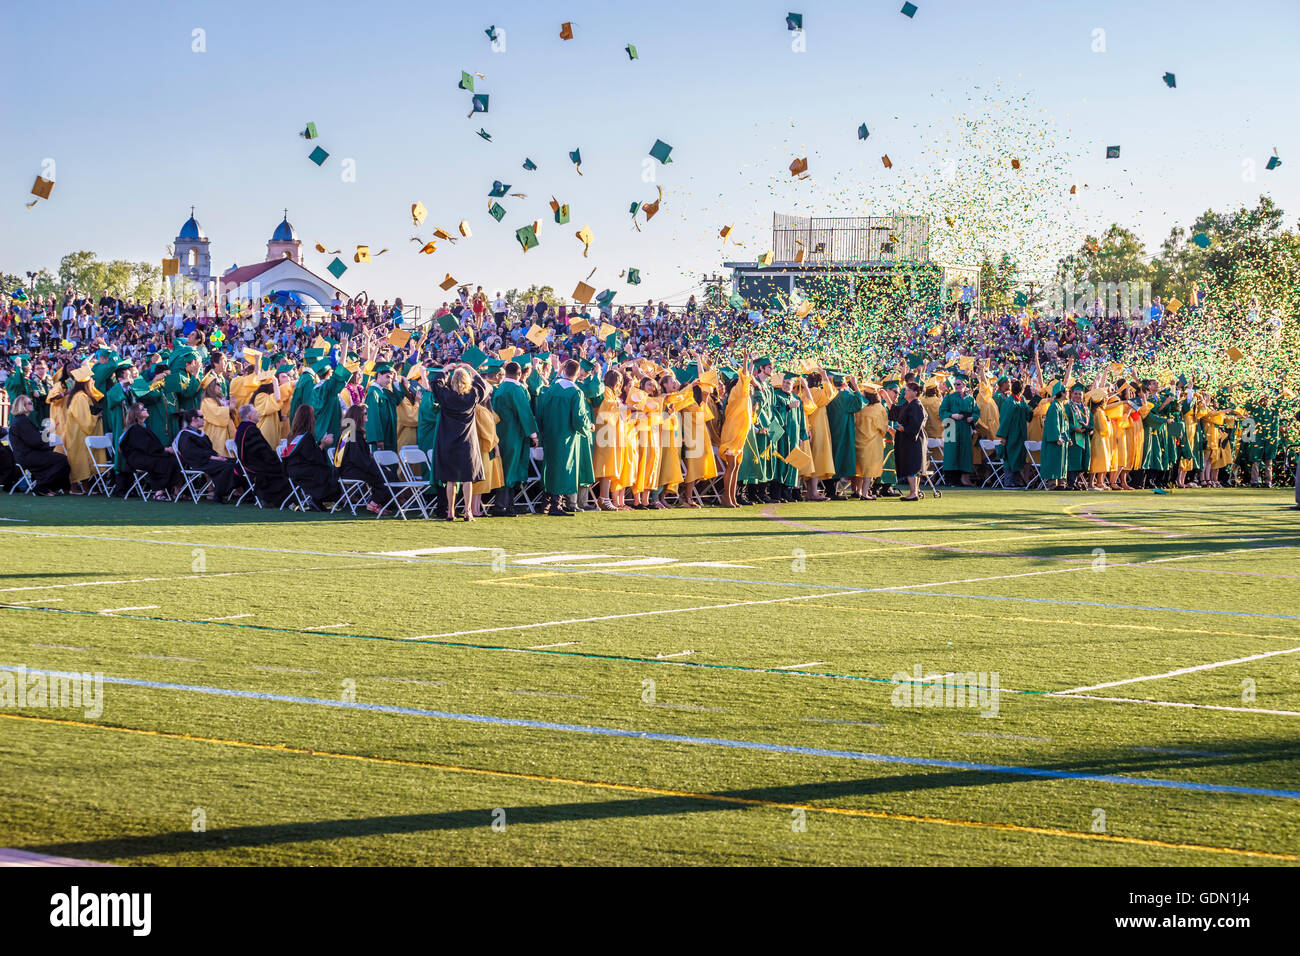 Ground level view of the culmination of a high school graduation taking place on a football field while students - Stock Image